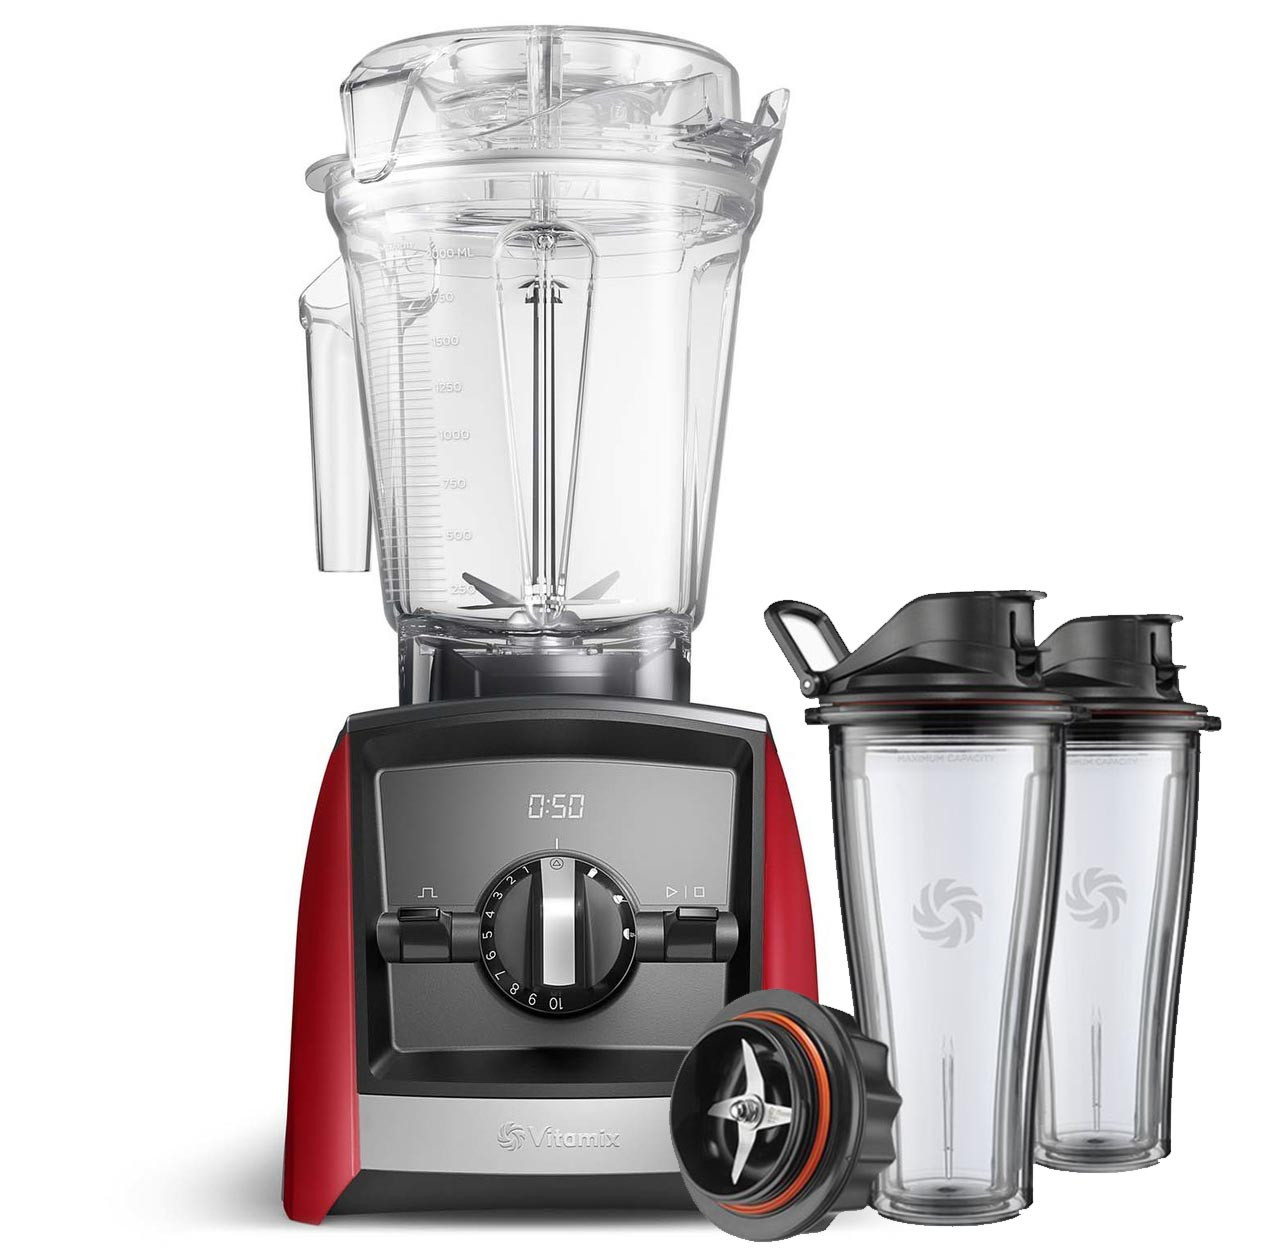 Vitamix Ascent Series A2500i Blender in Red with 600ml Blending Cup Starter Kit